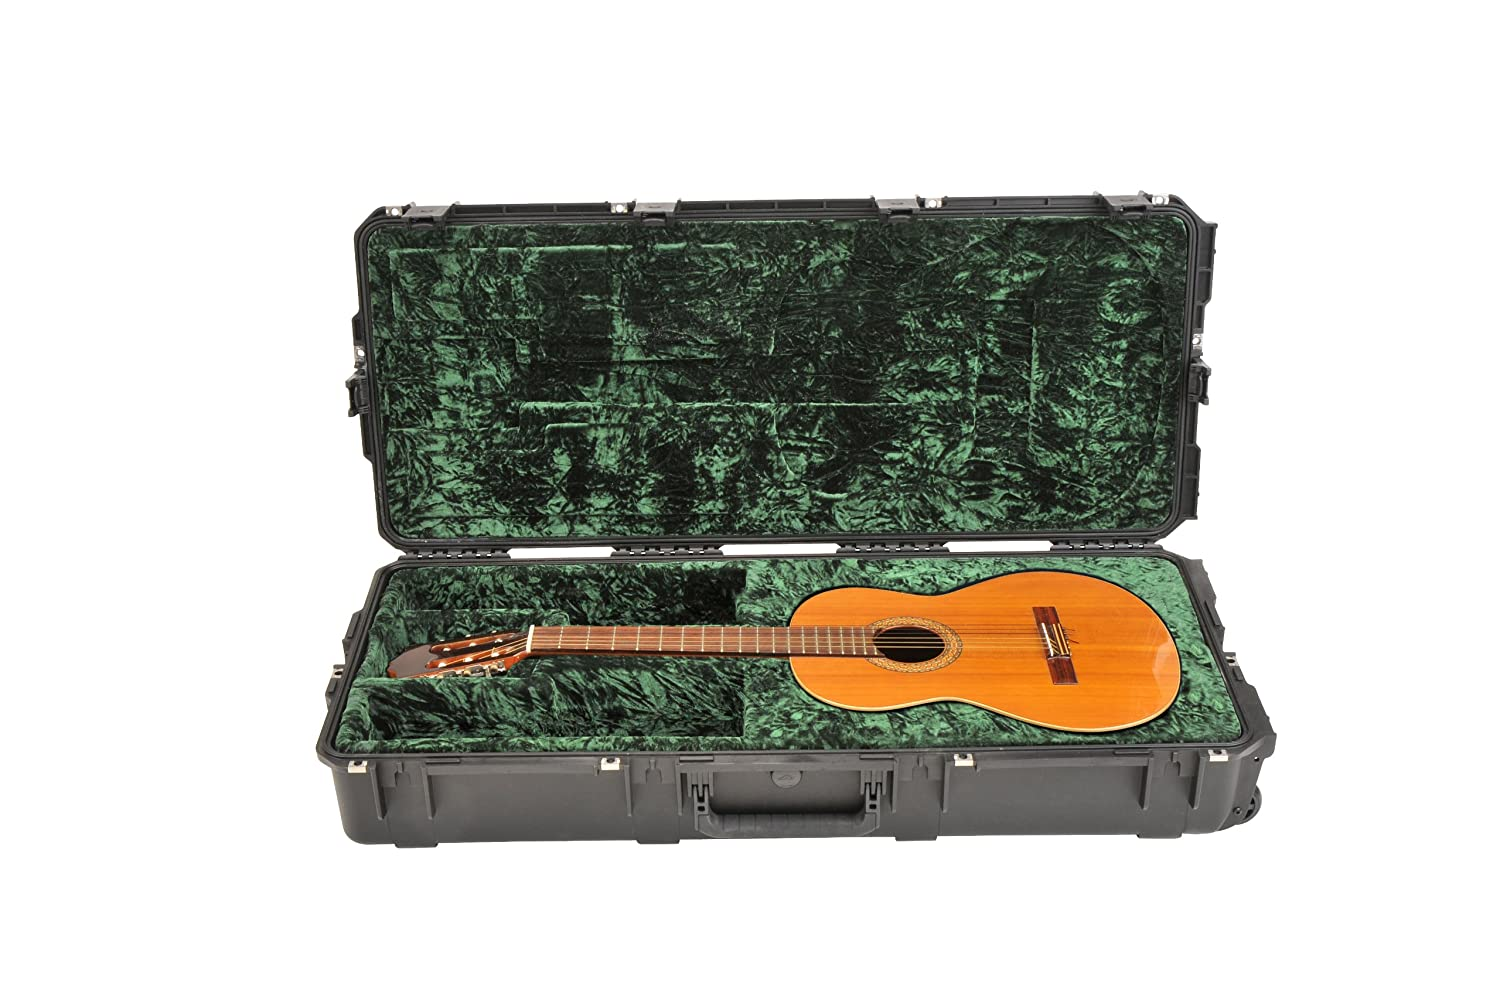 930ac00807 Amazon.com: SKB Injection Molded Classical Guitar Case - TSA Latches, with  wheels (3i-4217-30): Musical Instruments